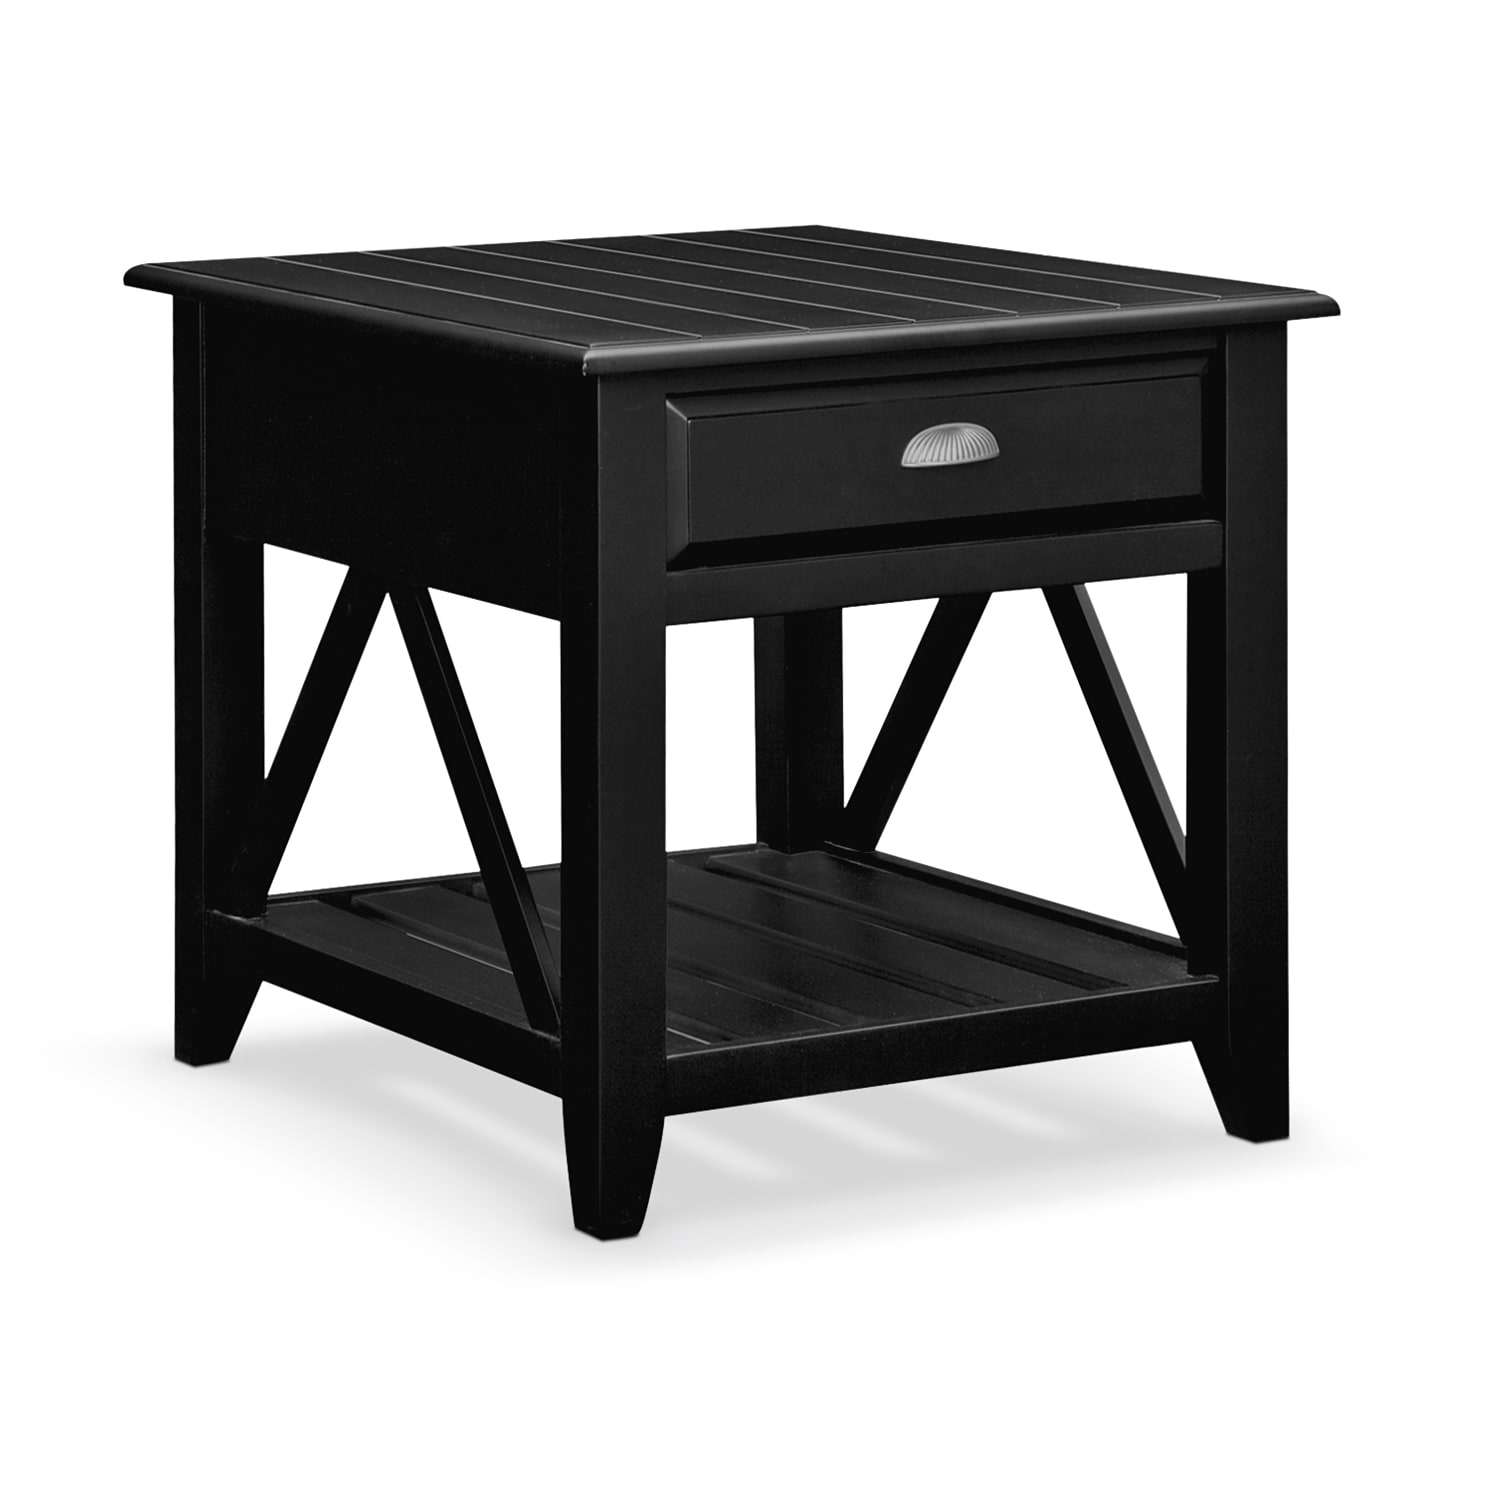 Plantation cove coastal black end table value city furniture for Black wood end tables